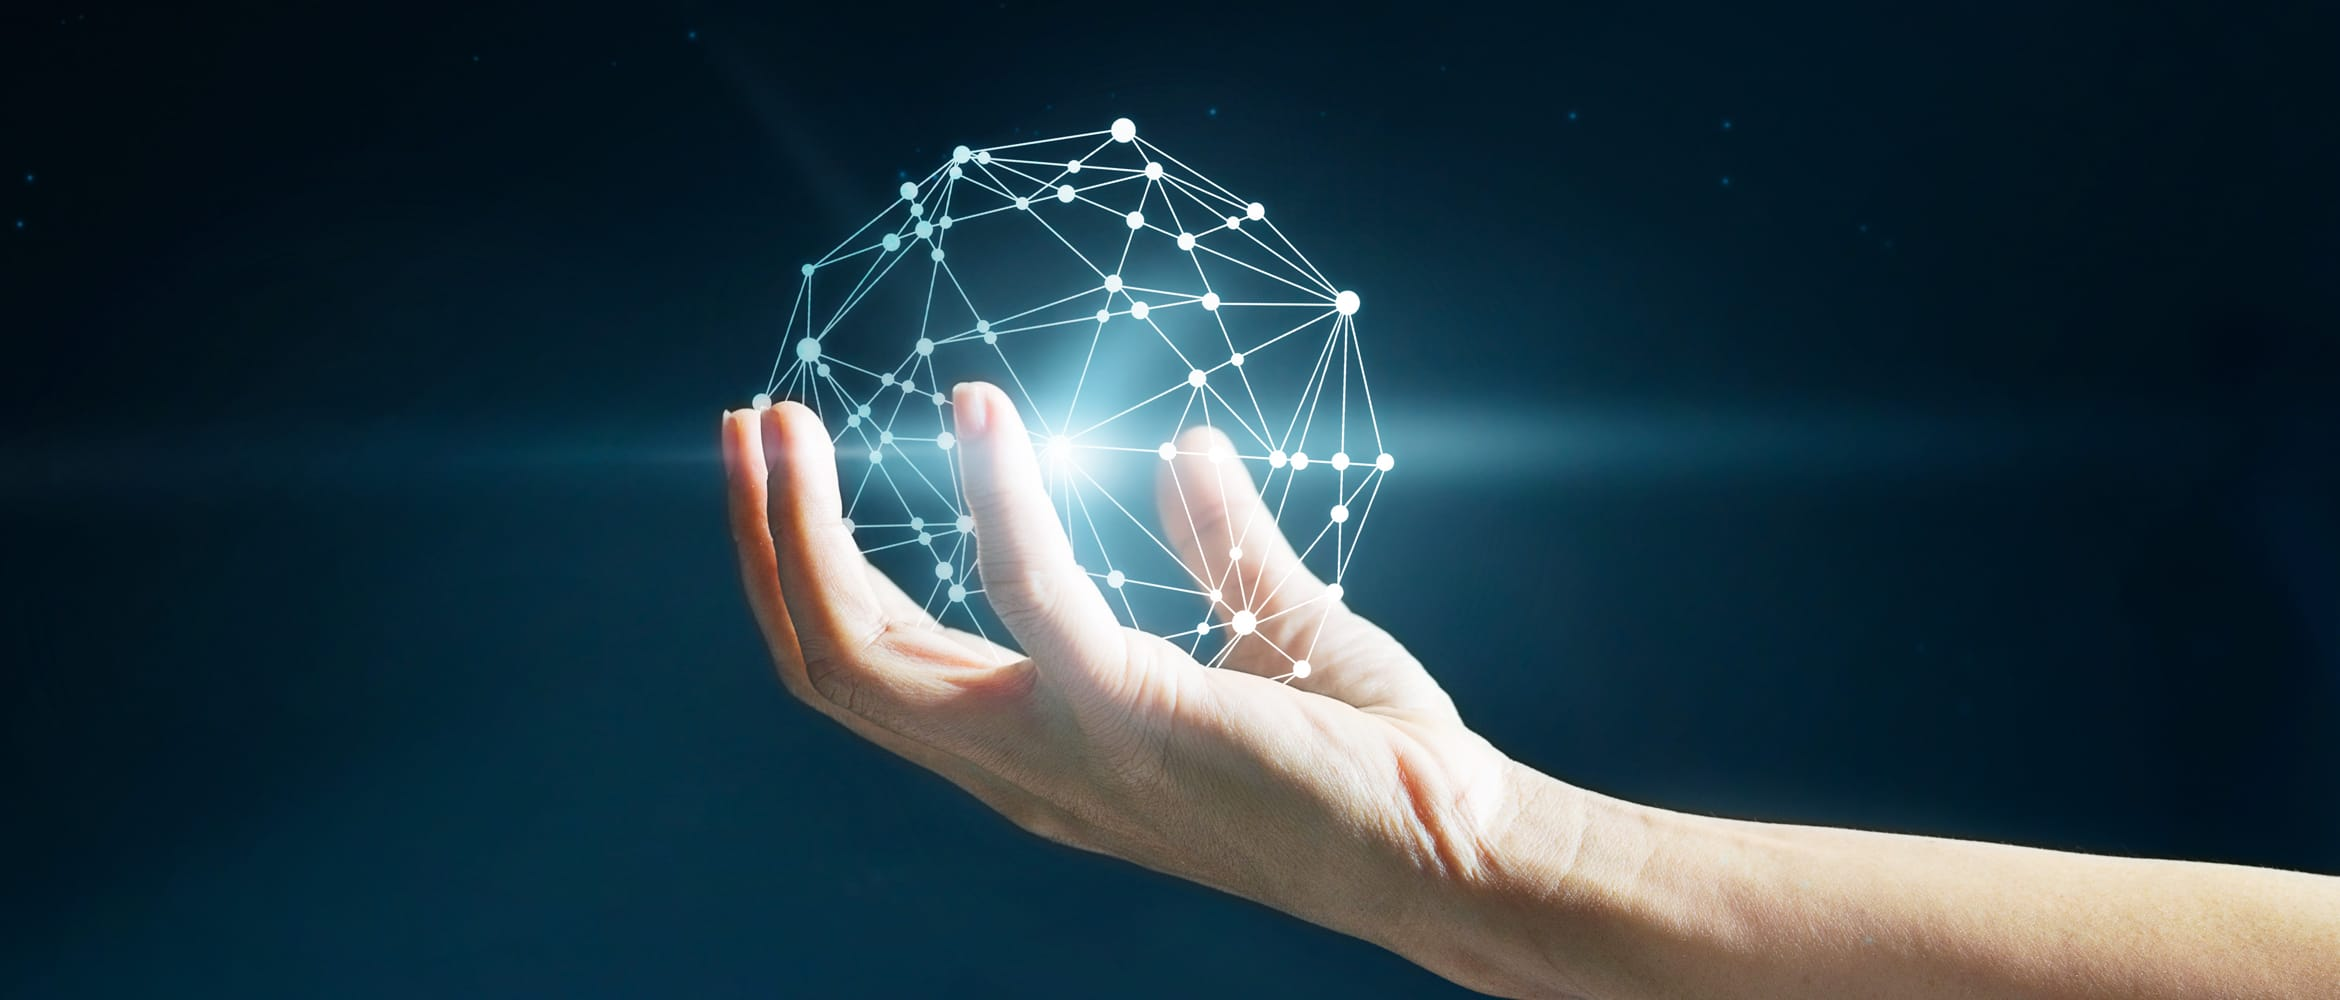 Hand holds a geometric glowing globe to illustrate the responsibility of change management, particularly within the NHS